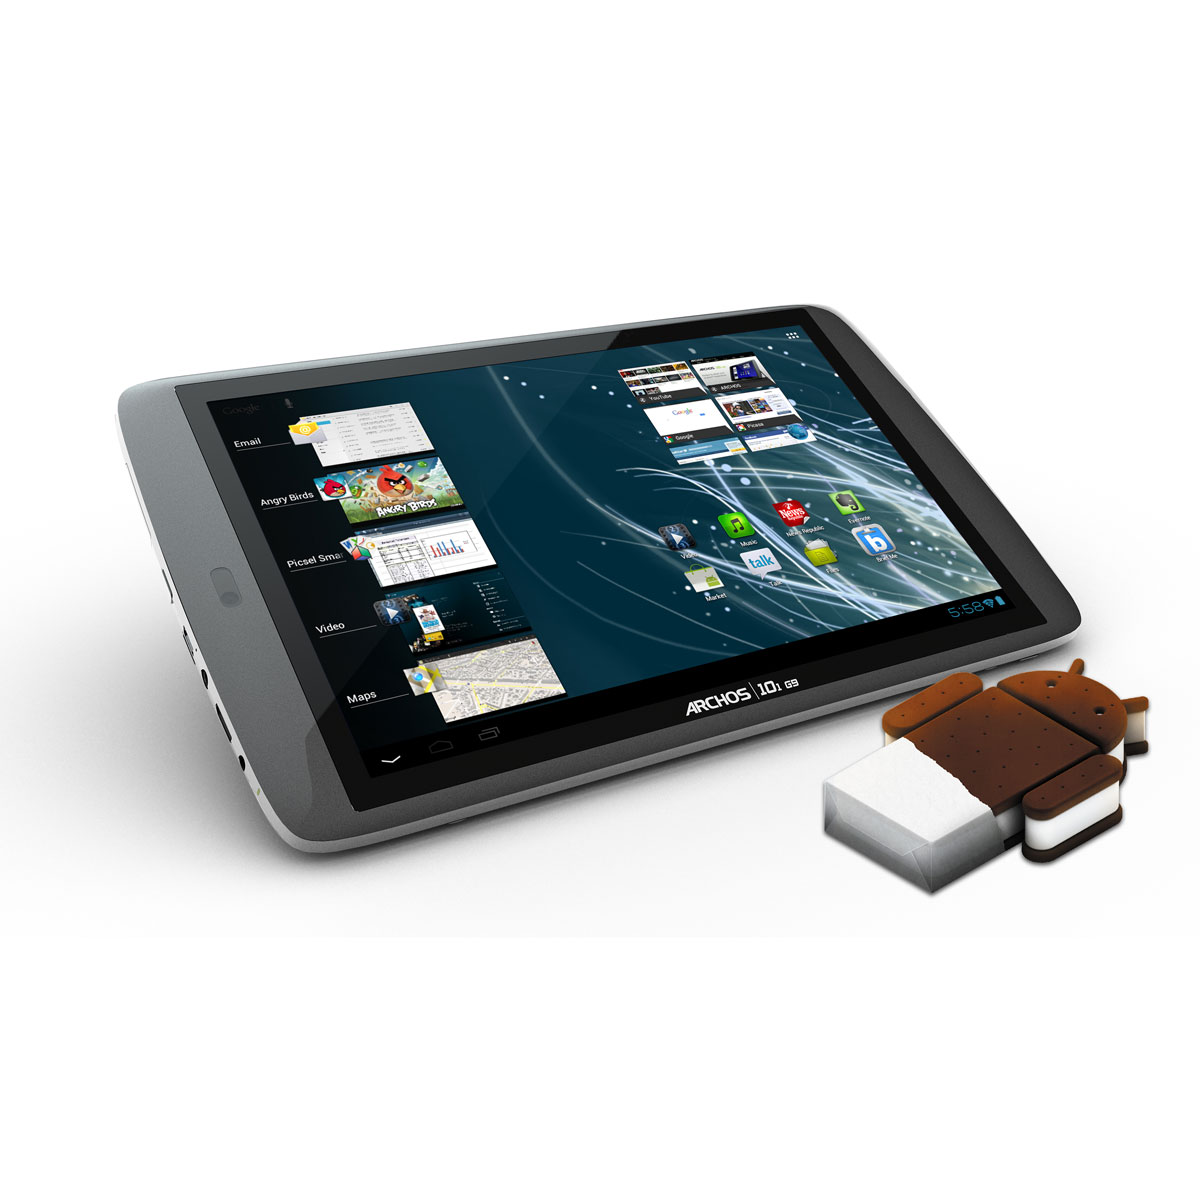 archos 101 g9 turbo ics 16 go tablette tactile archos. Black Bedroom Furniture Sets. Home Design Ideas